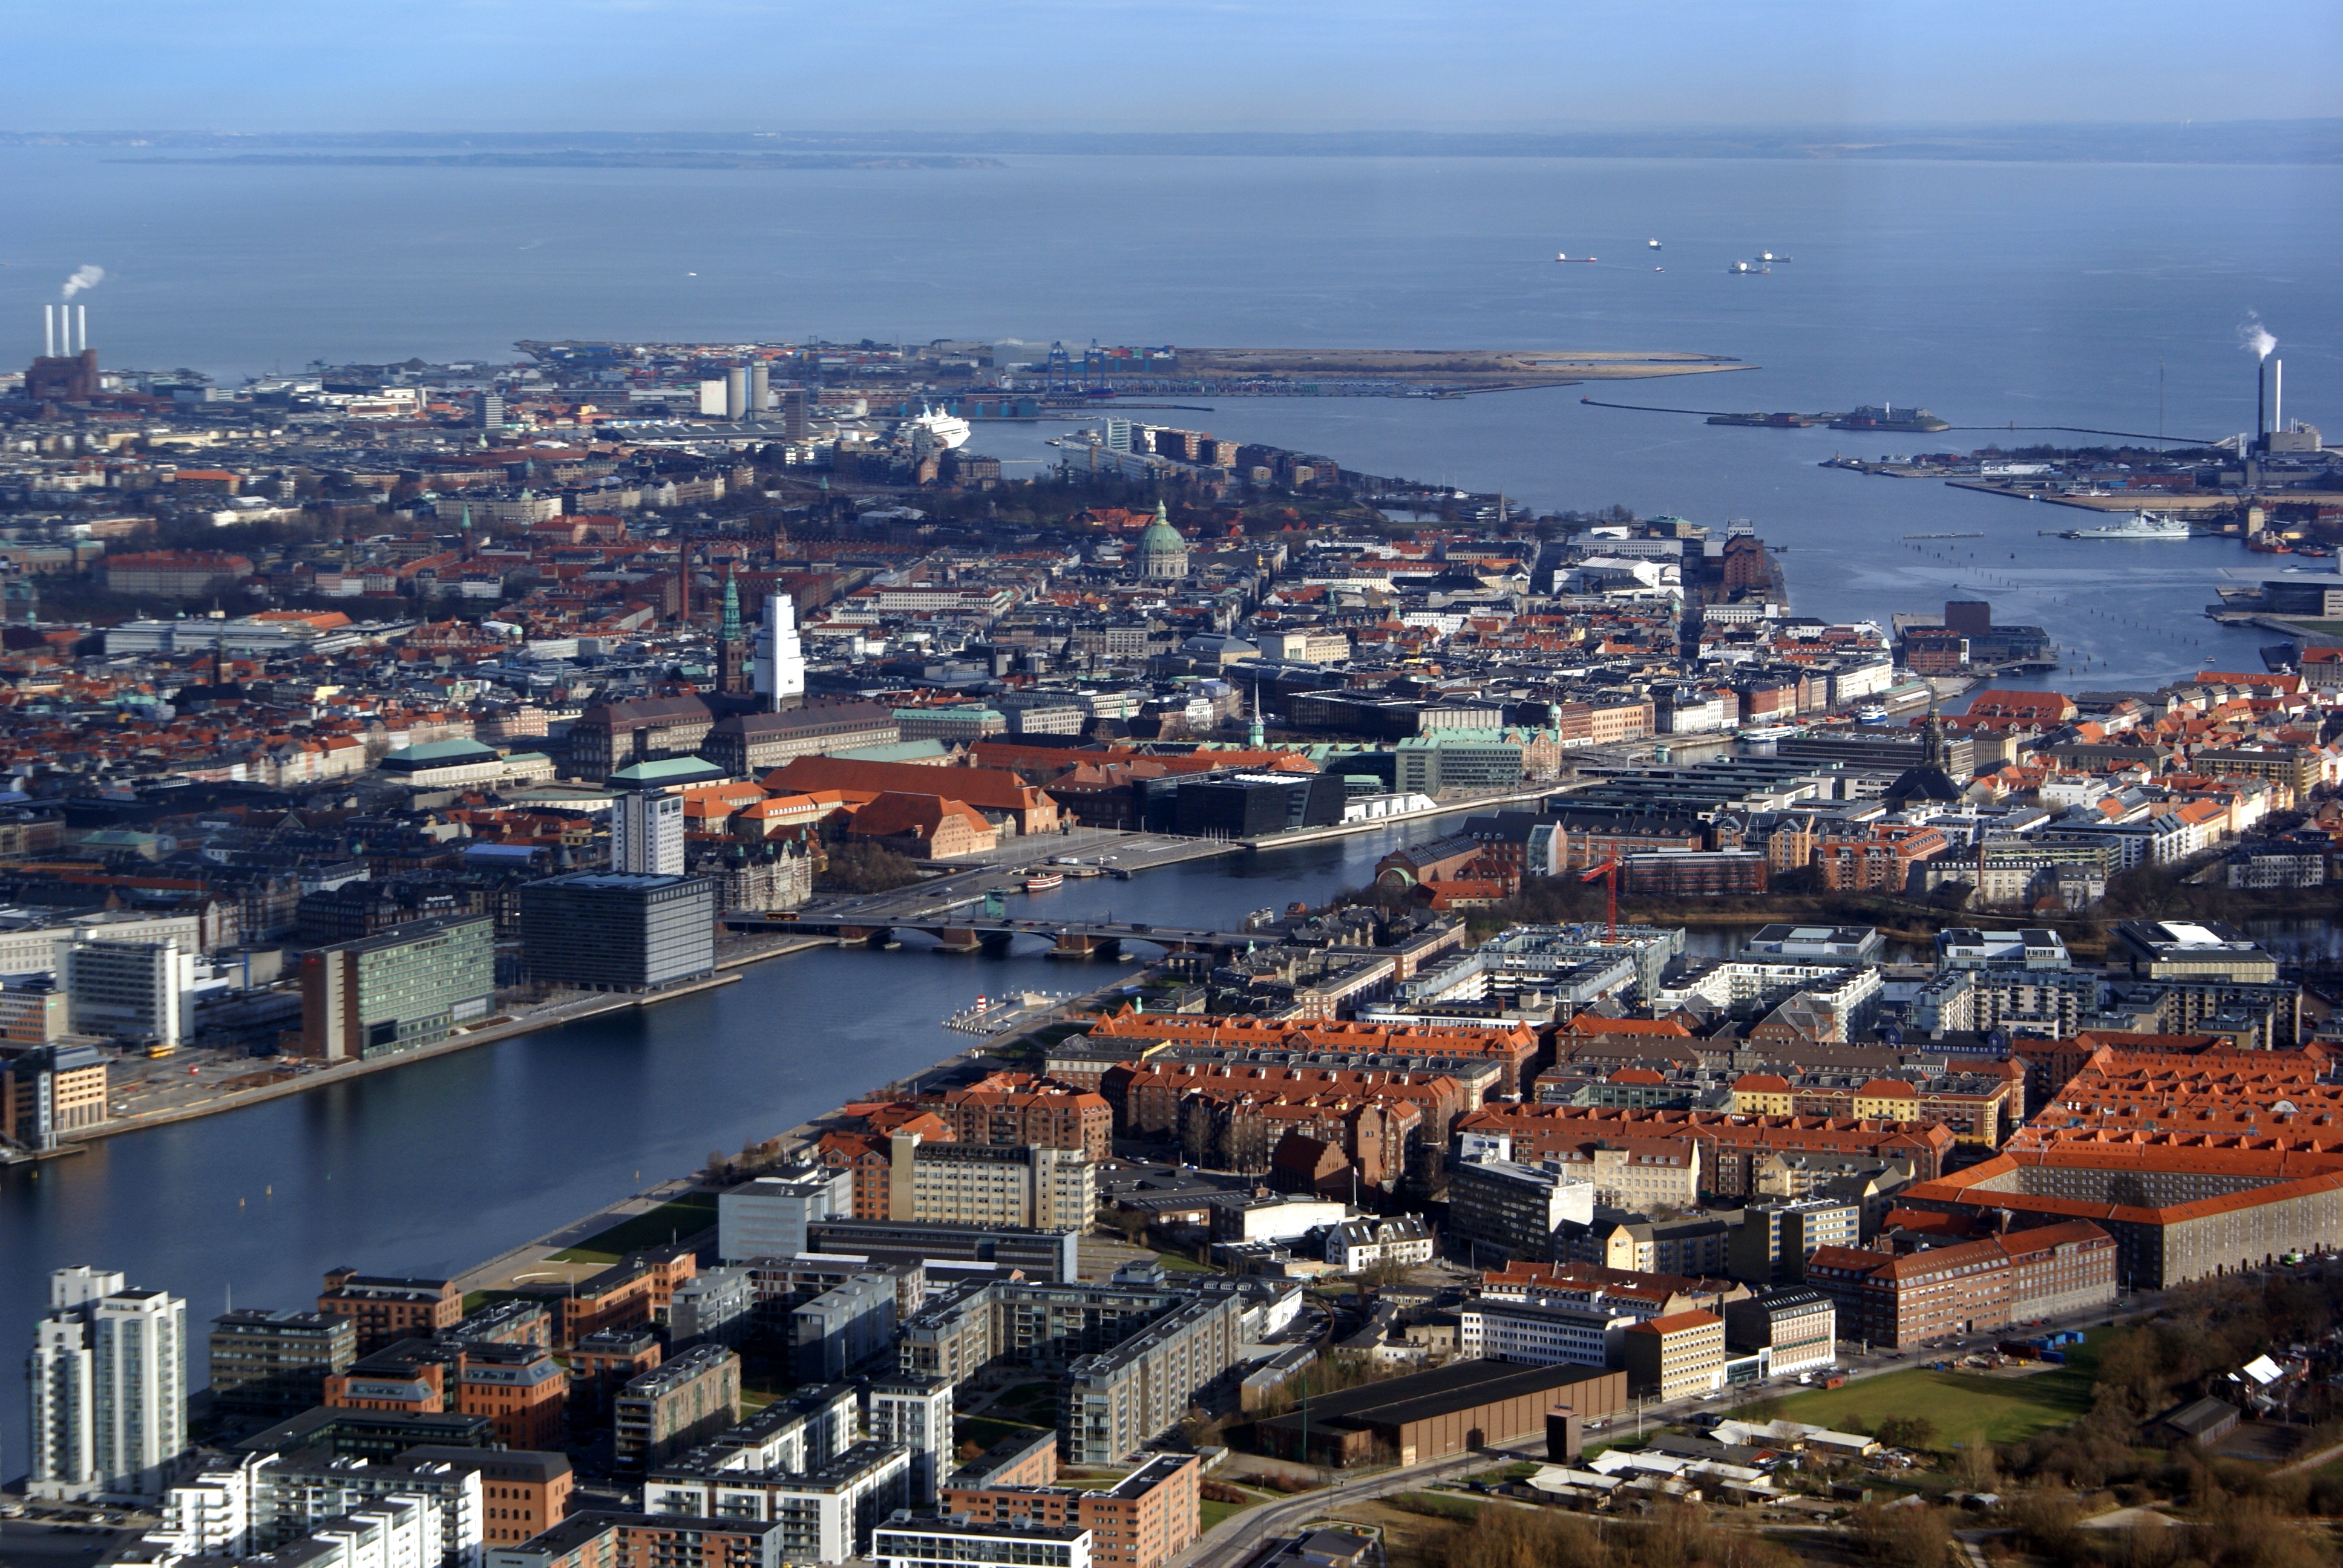 copenhagen is the best city in Copenhagen has been rated the world's most liveable city no british cities featured in metropolis magazine's annual rankings, which focuses on housing.